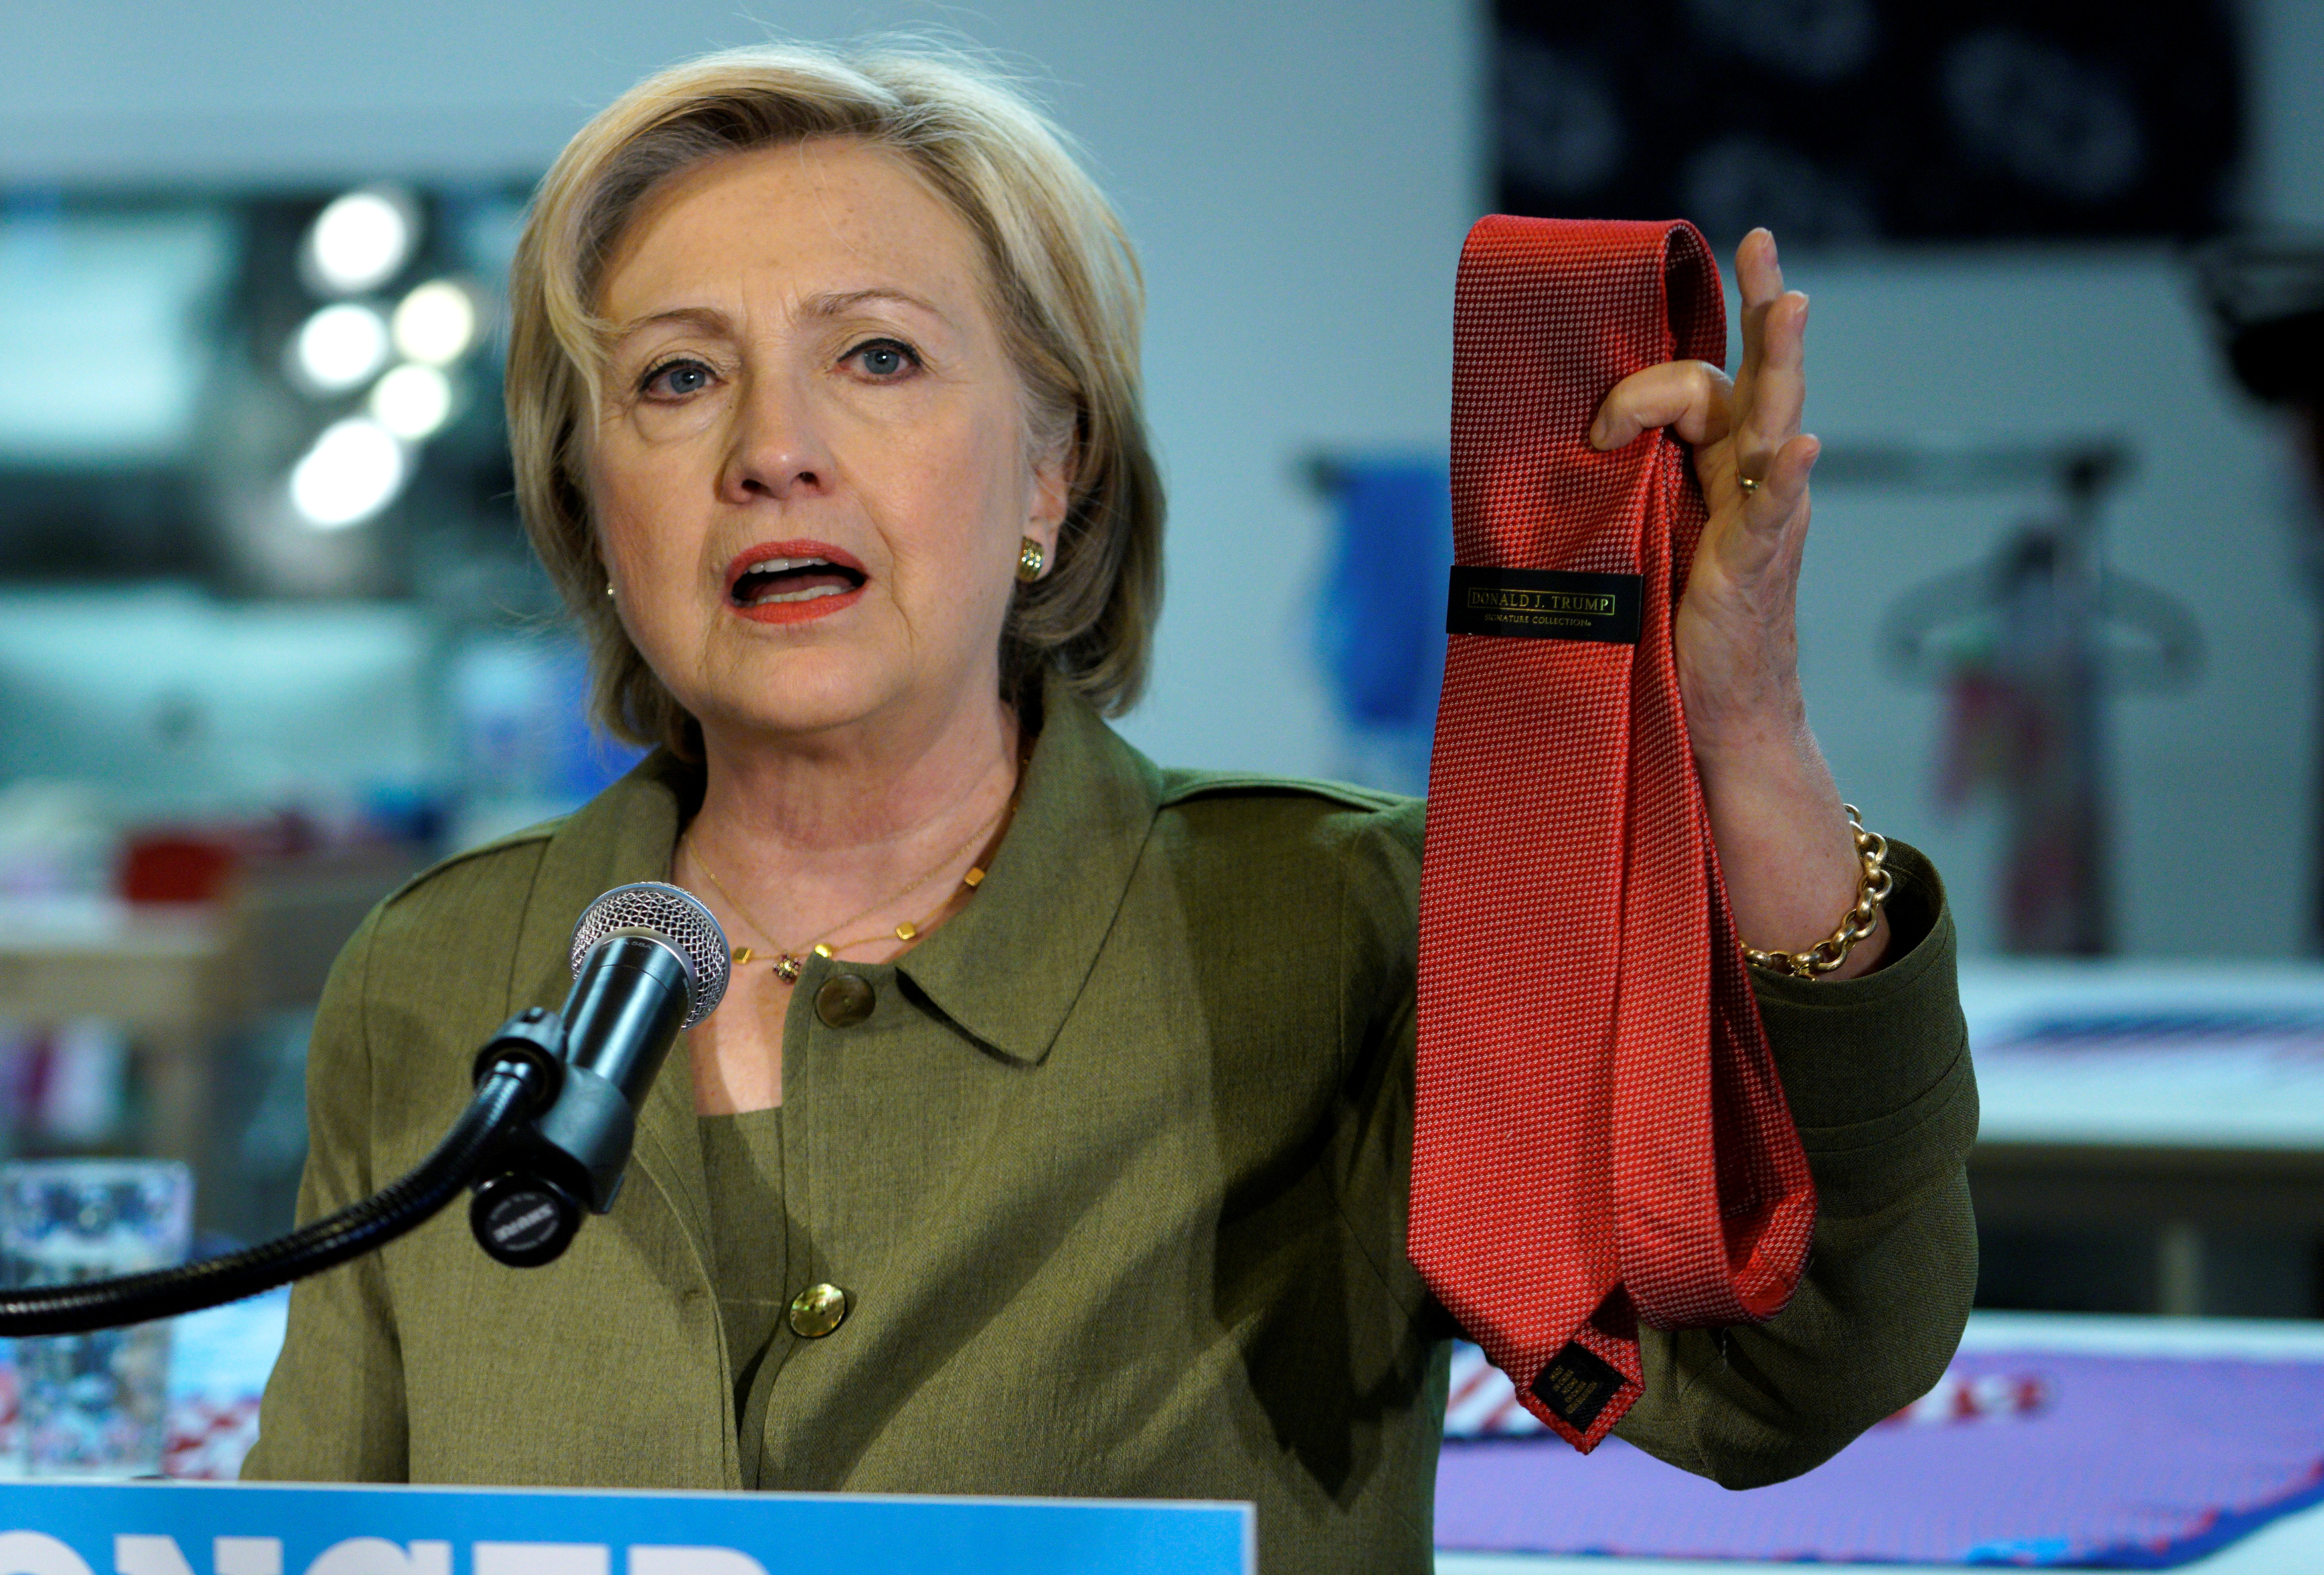 U.S. Democratic presidential nominee Hillary Clinton holds up a Donald Trump-brand tie made in China during a stop at a local tie company in Denver, Colorado, Aug. 3, 2016.